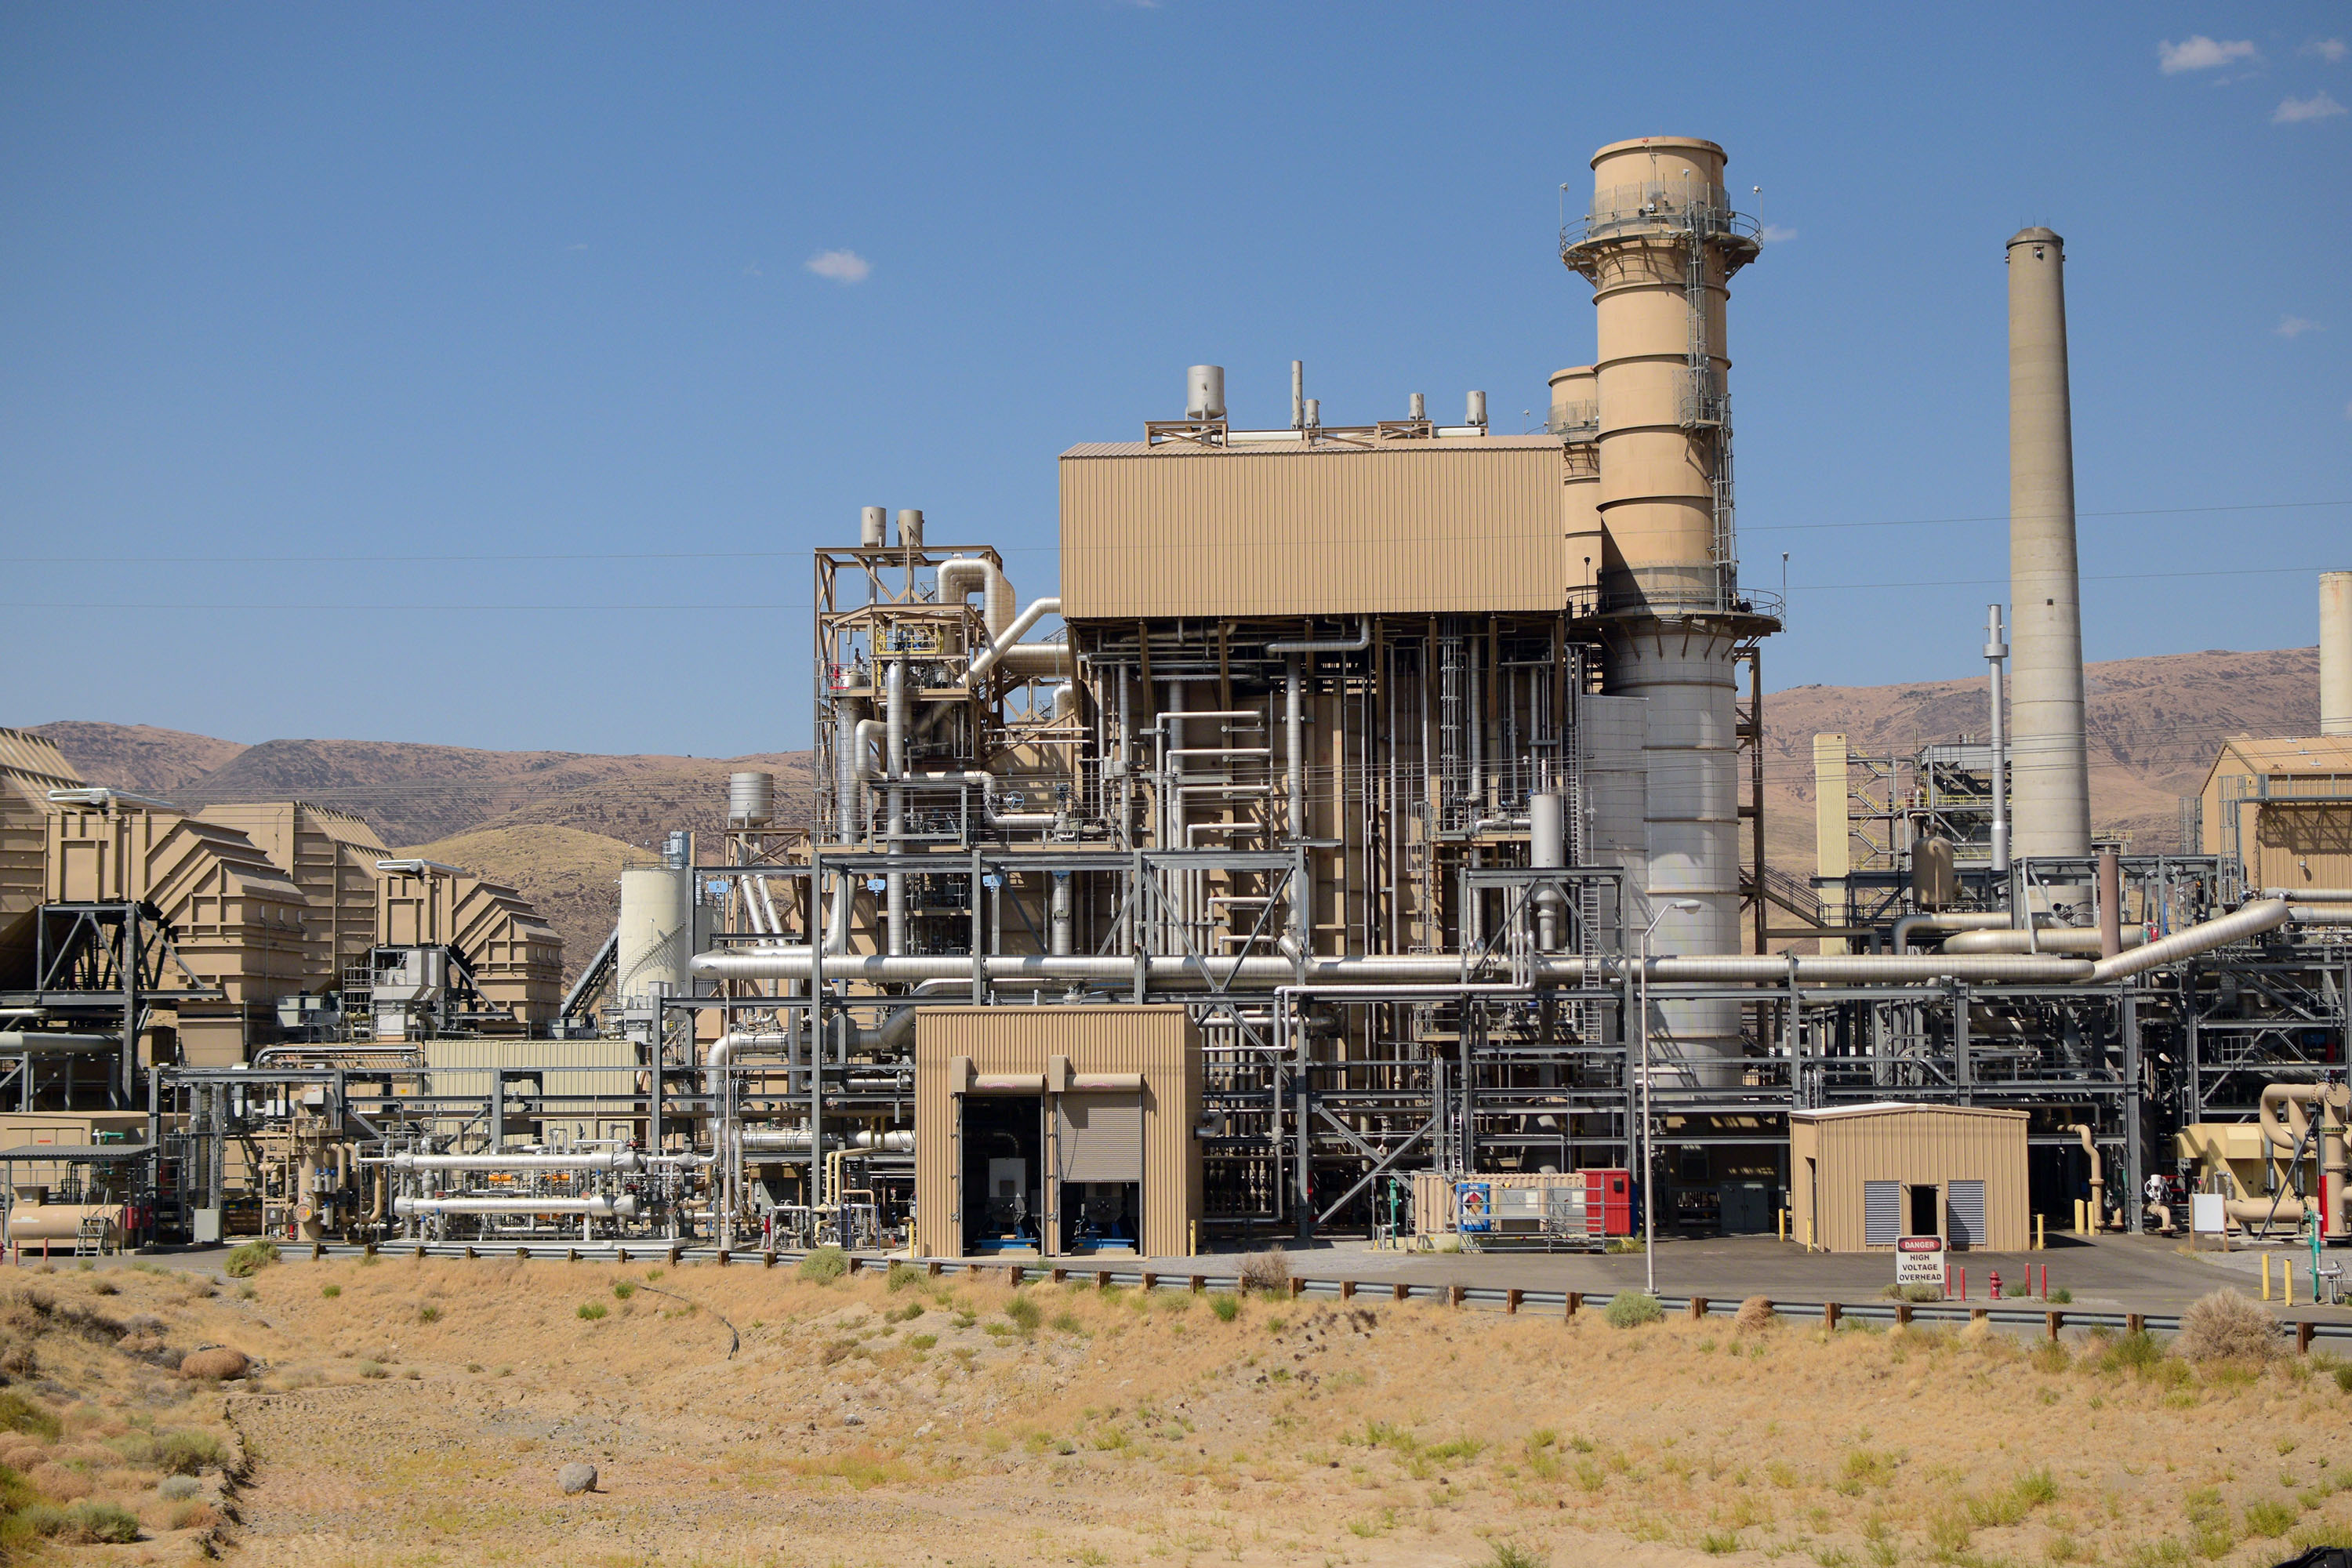 The Frank A. Tracy Generating Station just east of Reno, NV